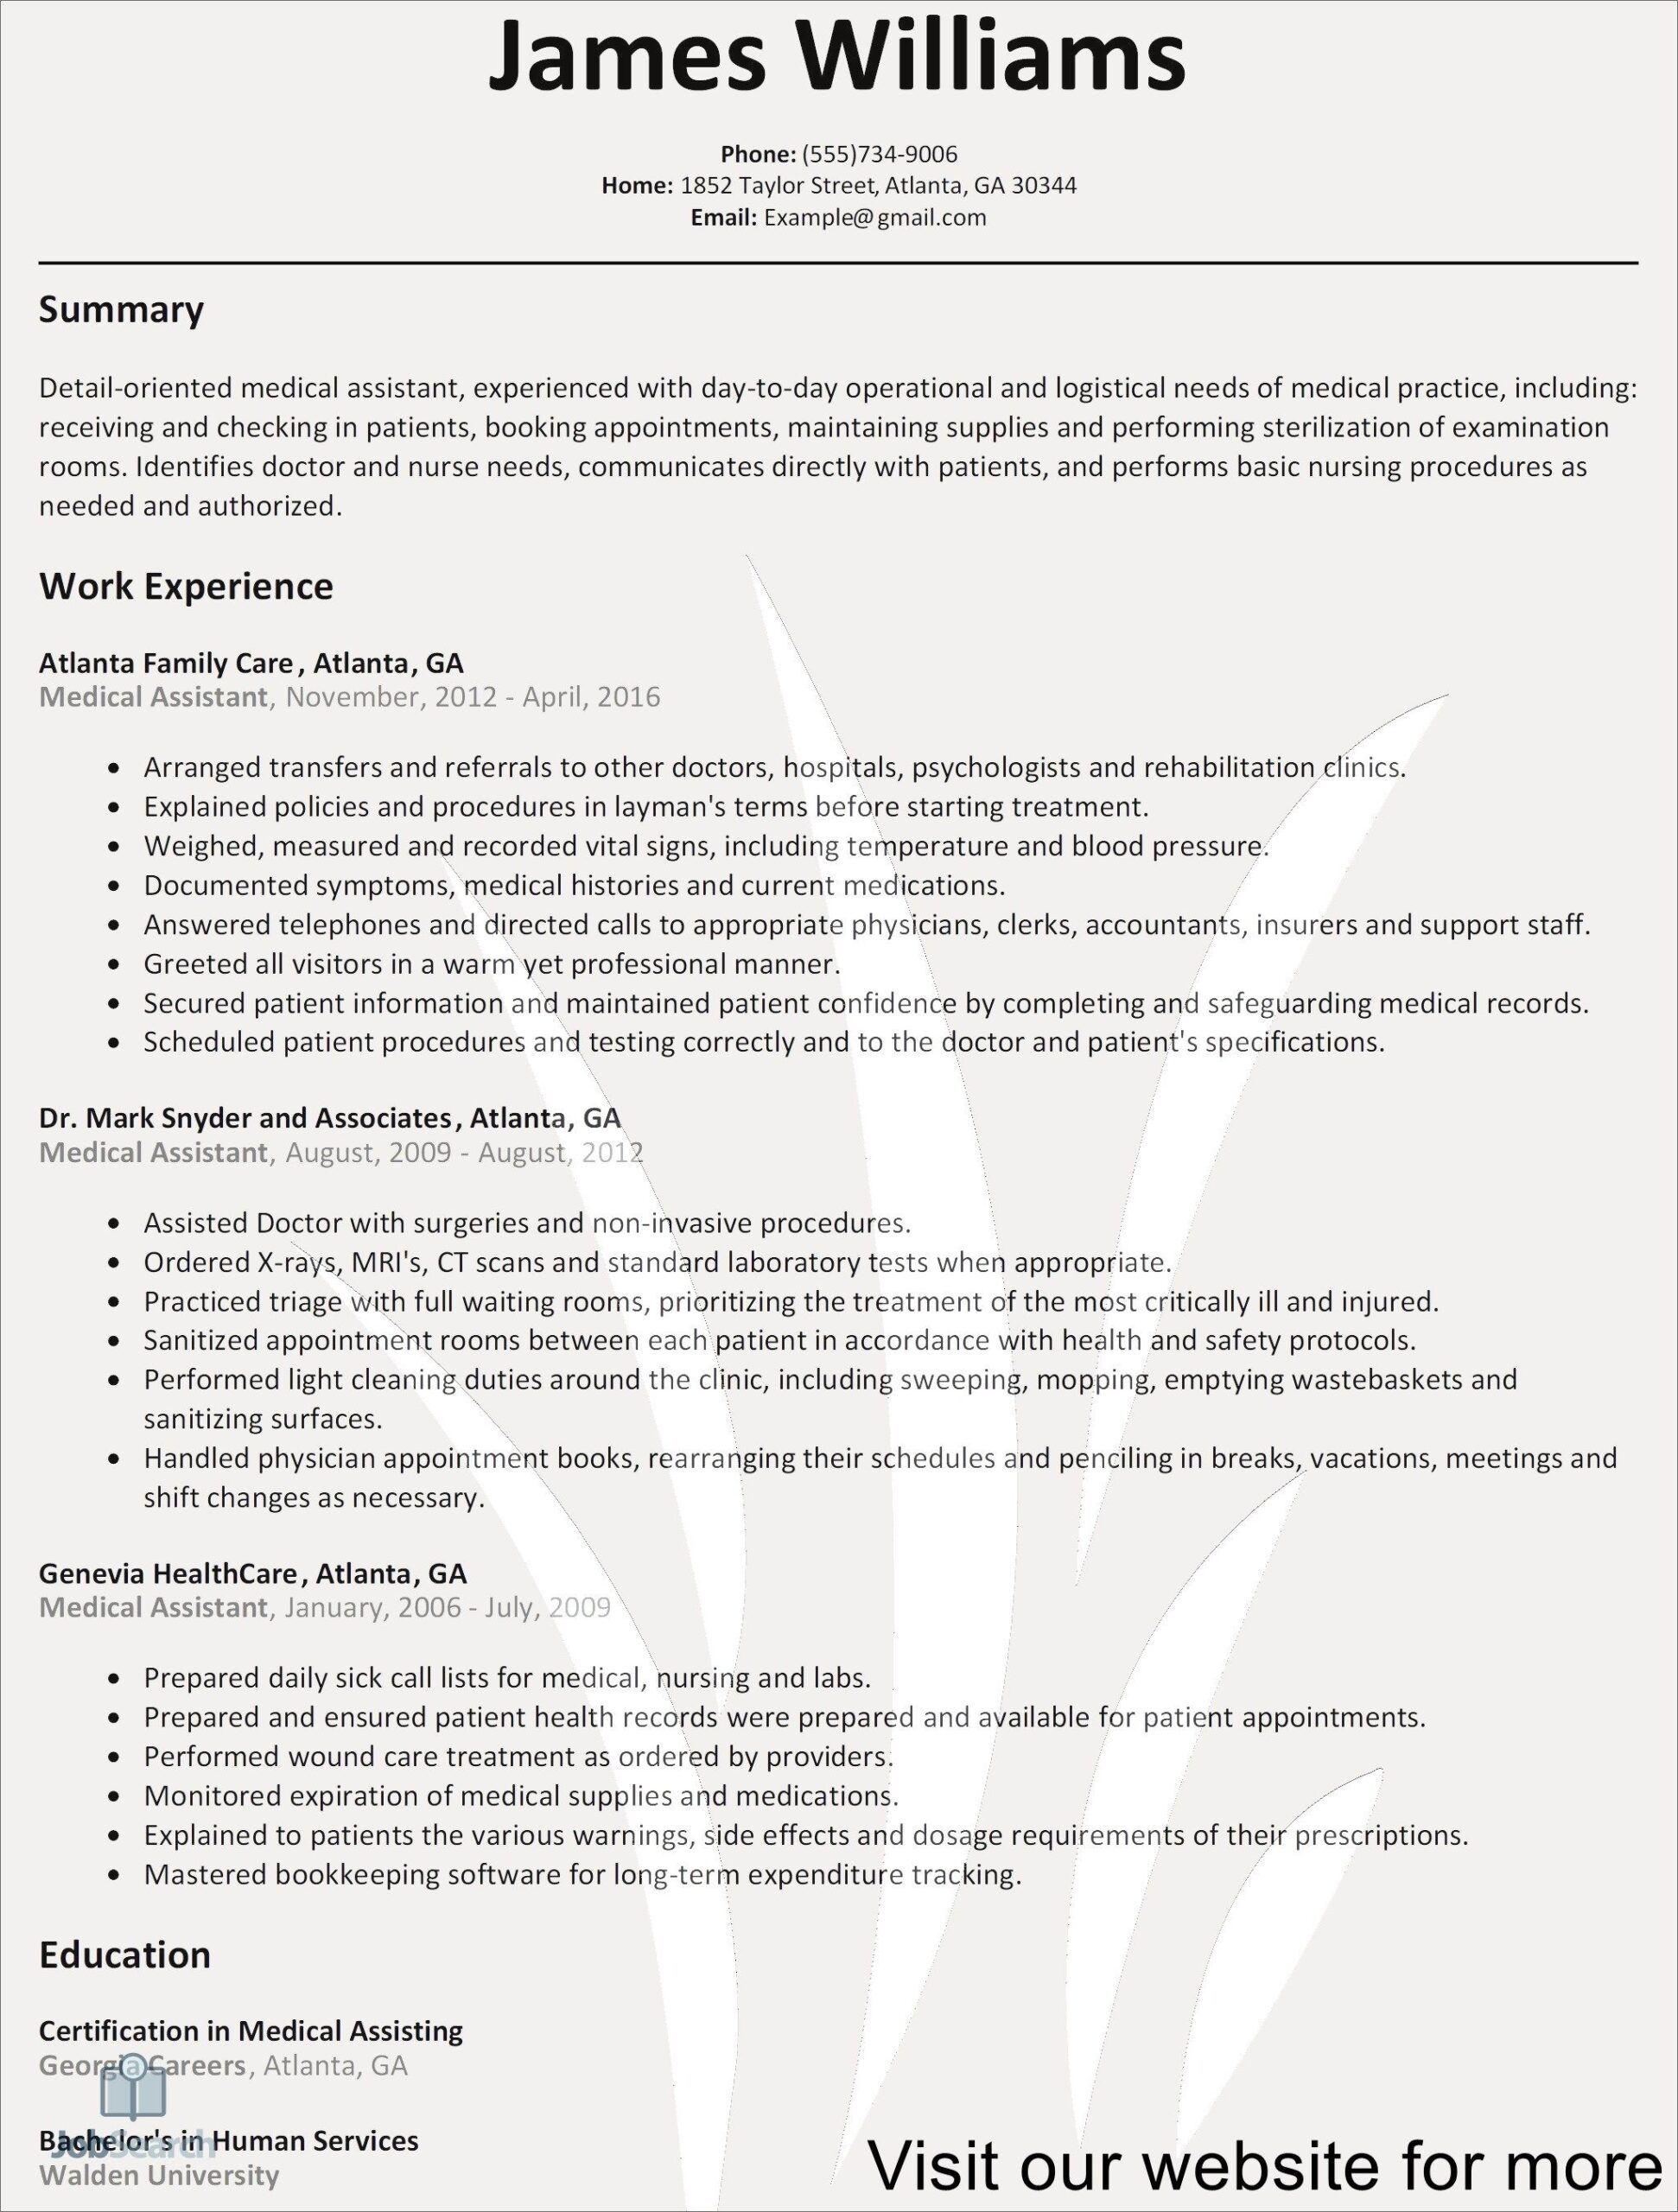 resume example assistant manager template professional job writing tips stock broker Resume Resume Writing Tips 2020